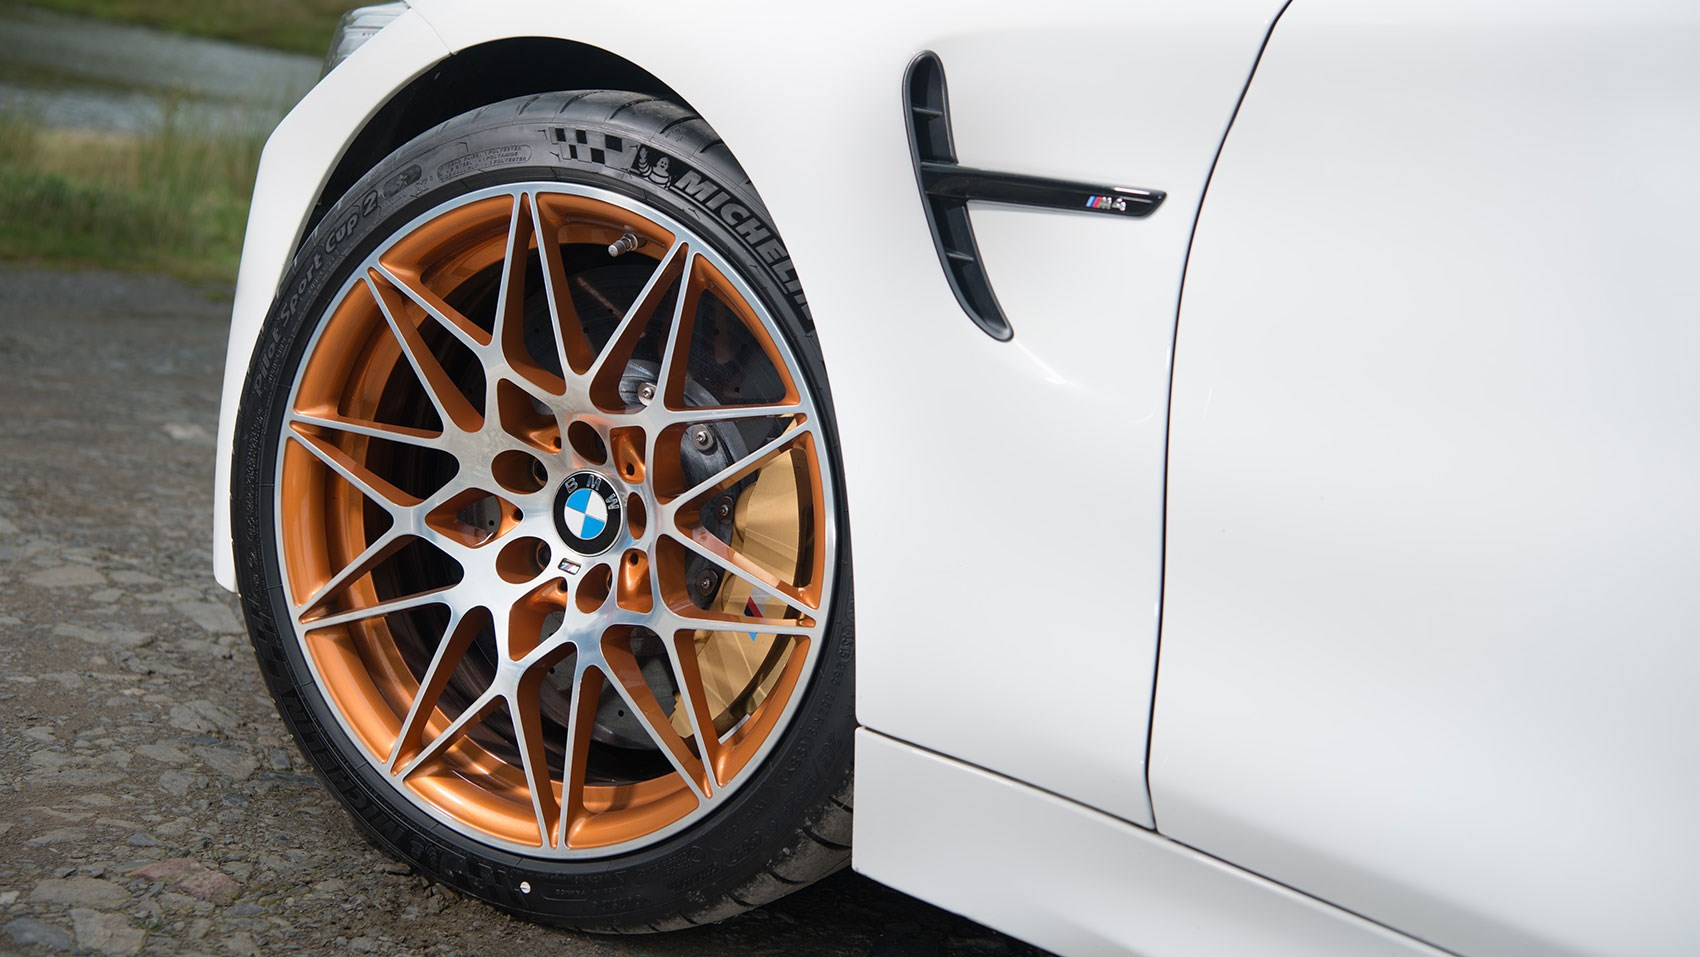 Alloy wheels and Cup tyres part of the upgrade on BMW M4 GTS